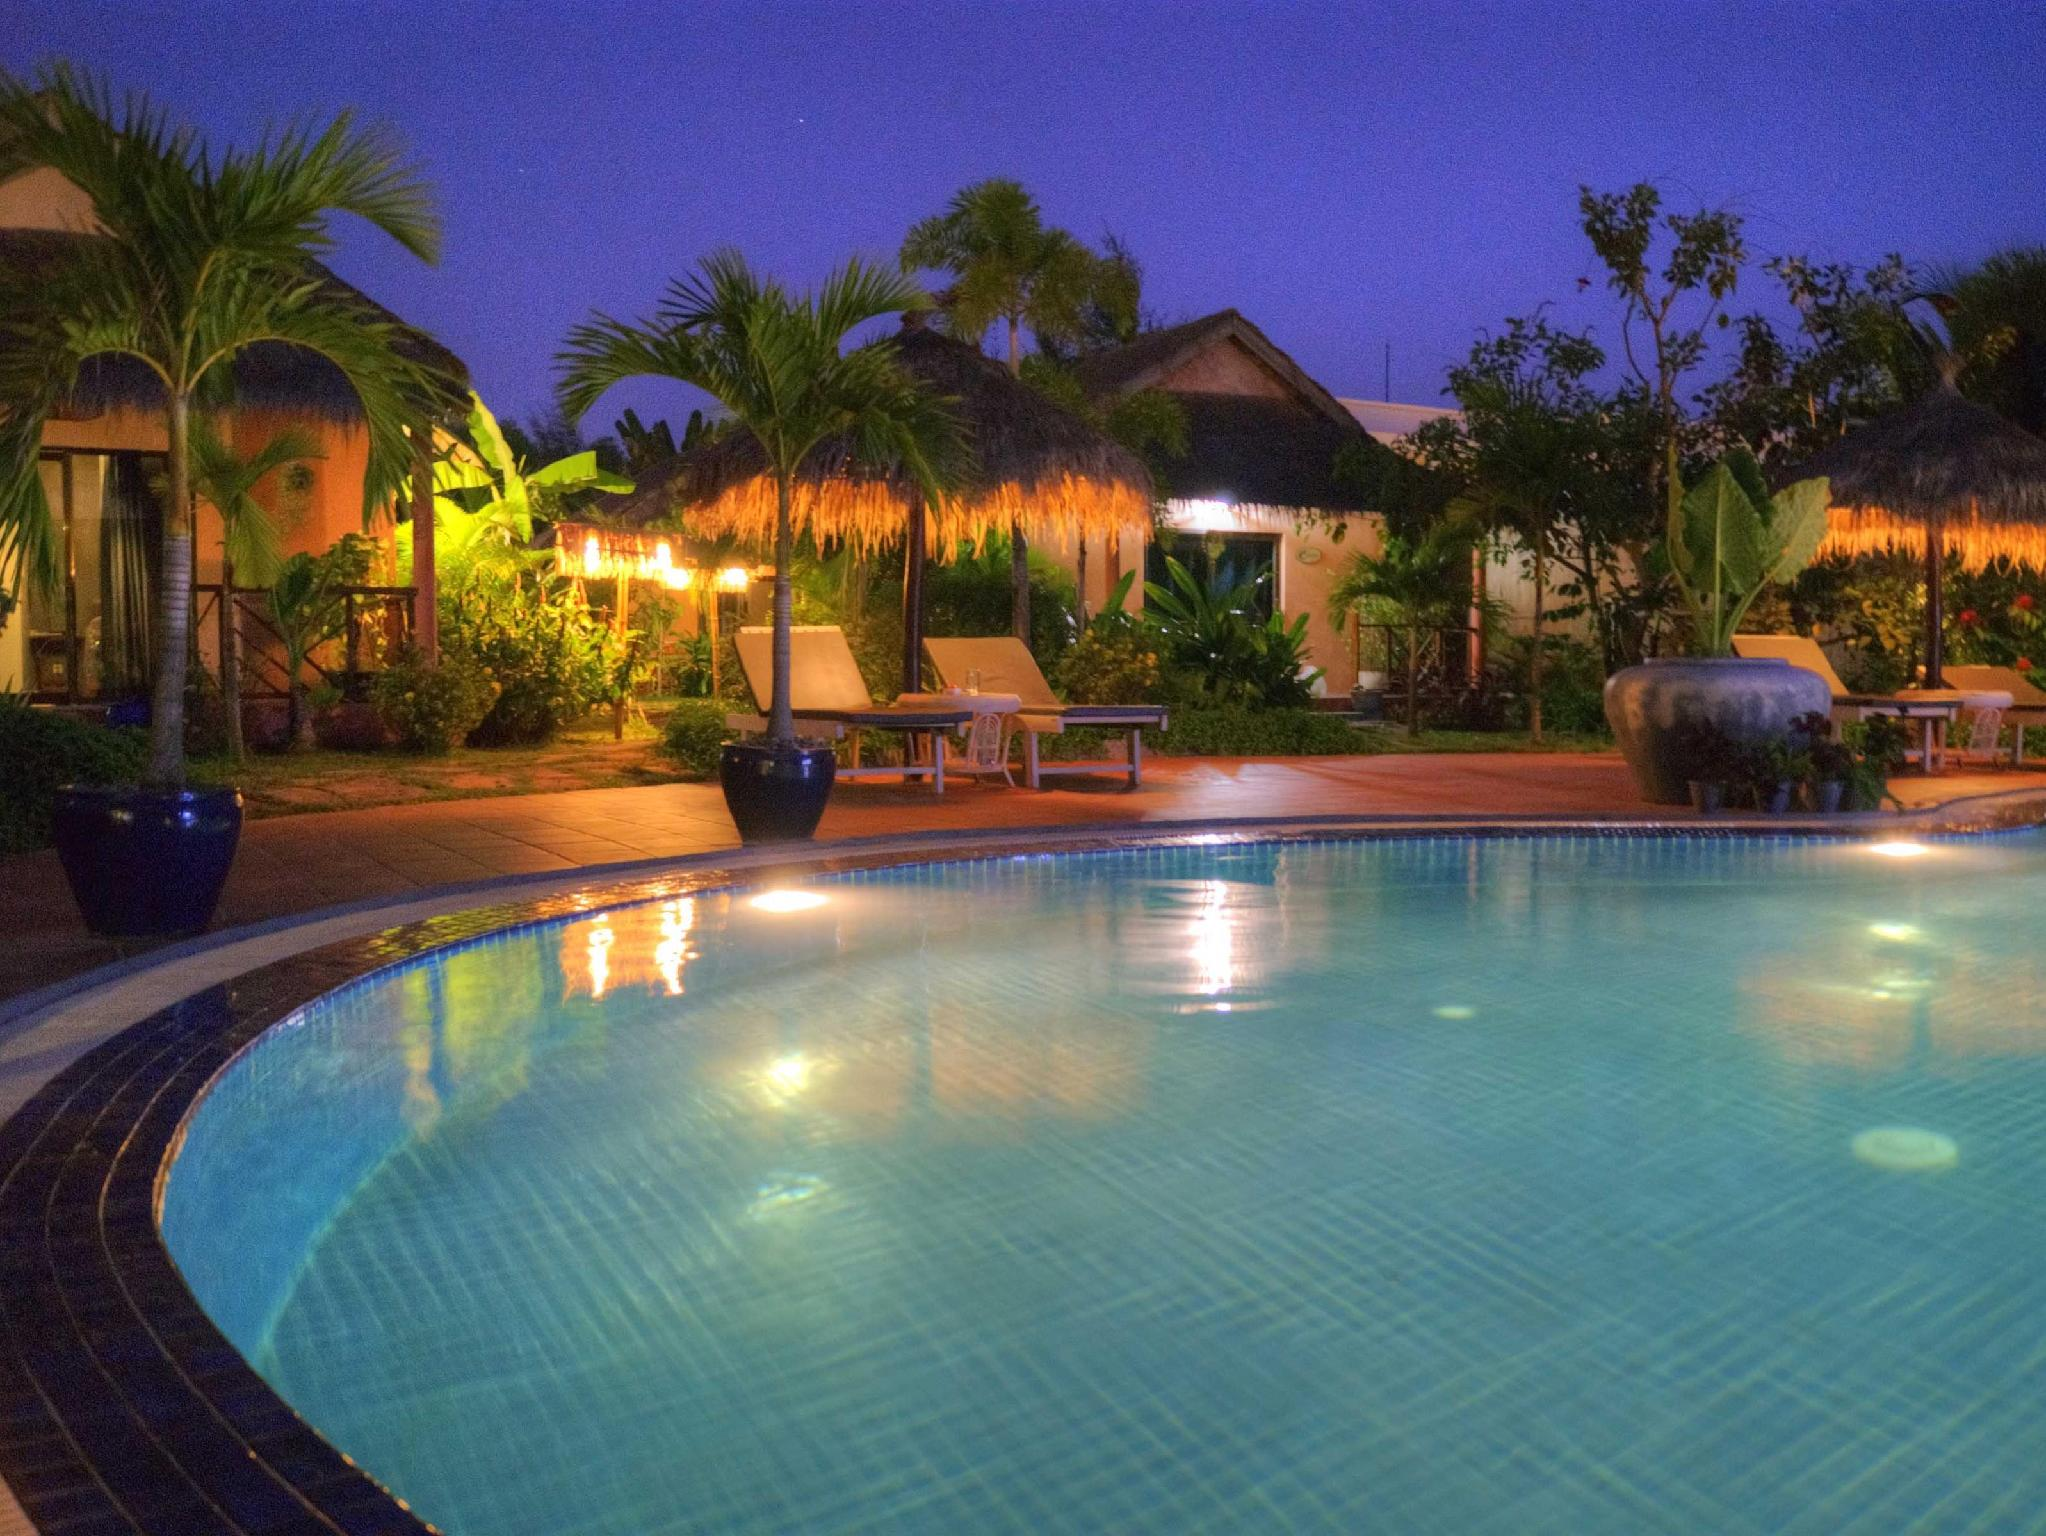 10 Best Sihanoukville Hotels: HD Photos   Reviews of Hotels in ...